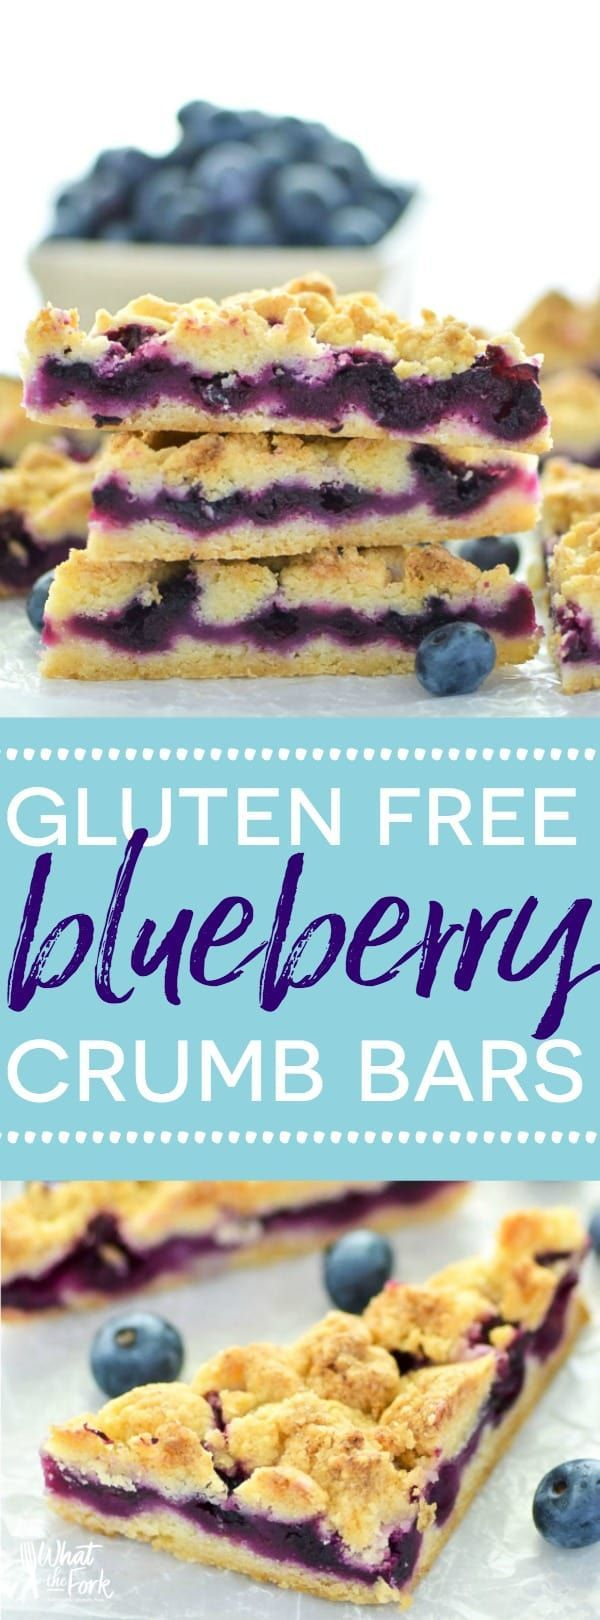 These Gluten Free Blueberry Crumb Bars are made with fresh blueberries and are a really delicious dessert or snack. The crumb is nice and crisp and the lemon zest makes these bright and fresh! Recipe from @whattheforkblog   whattheforkfoodblog.com   glute